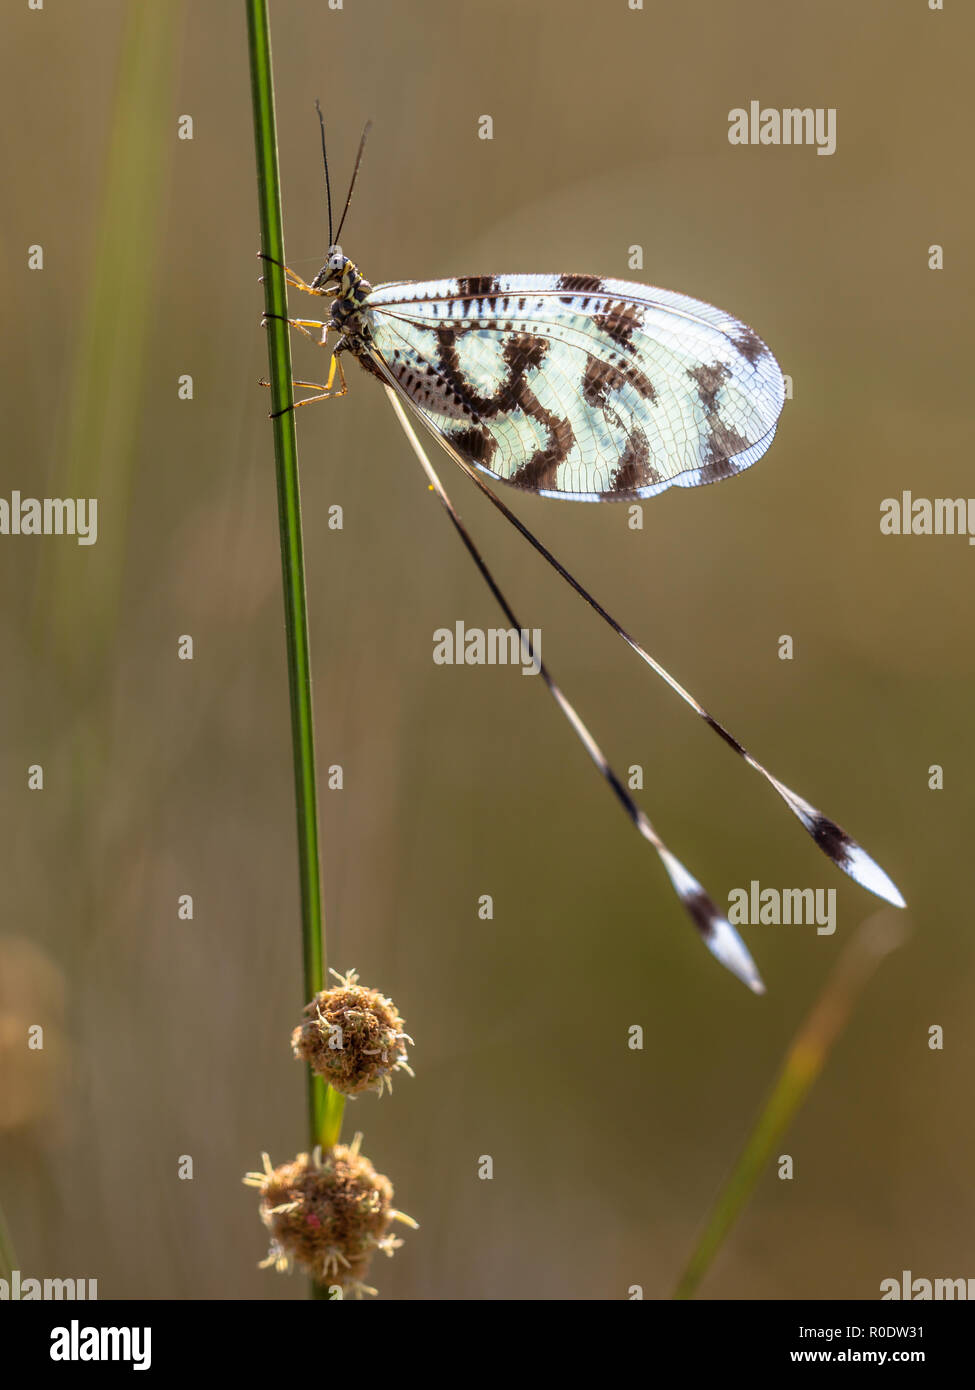 Antlion relative Nemoptera is a Palearctic genus of insects of the family Nemopteridae or spoonwings. - Stock Image